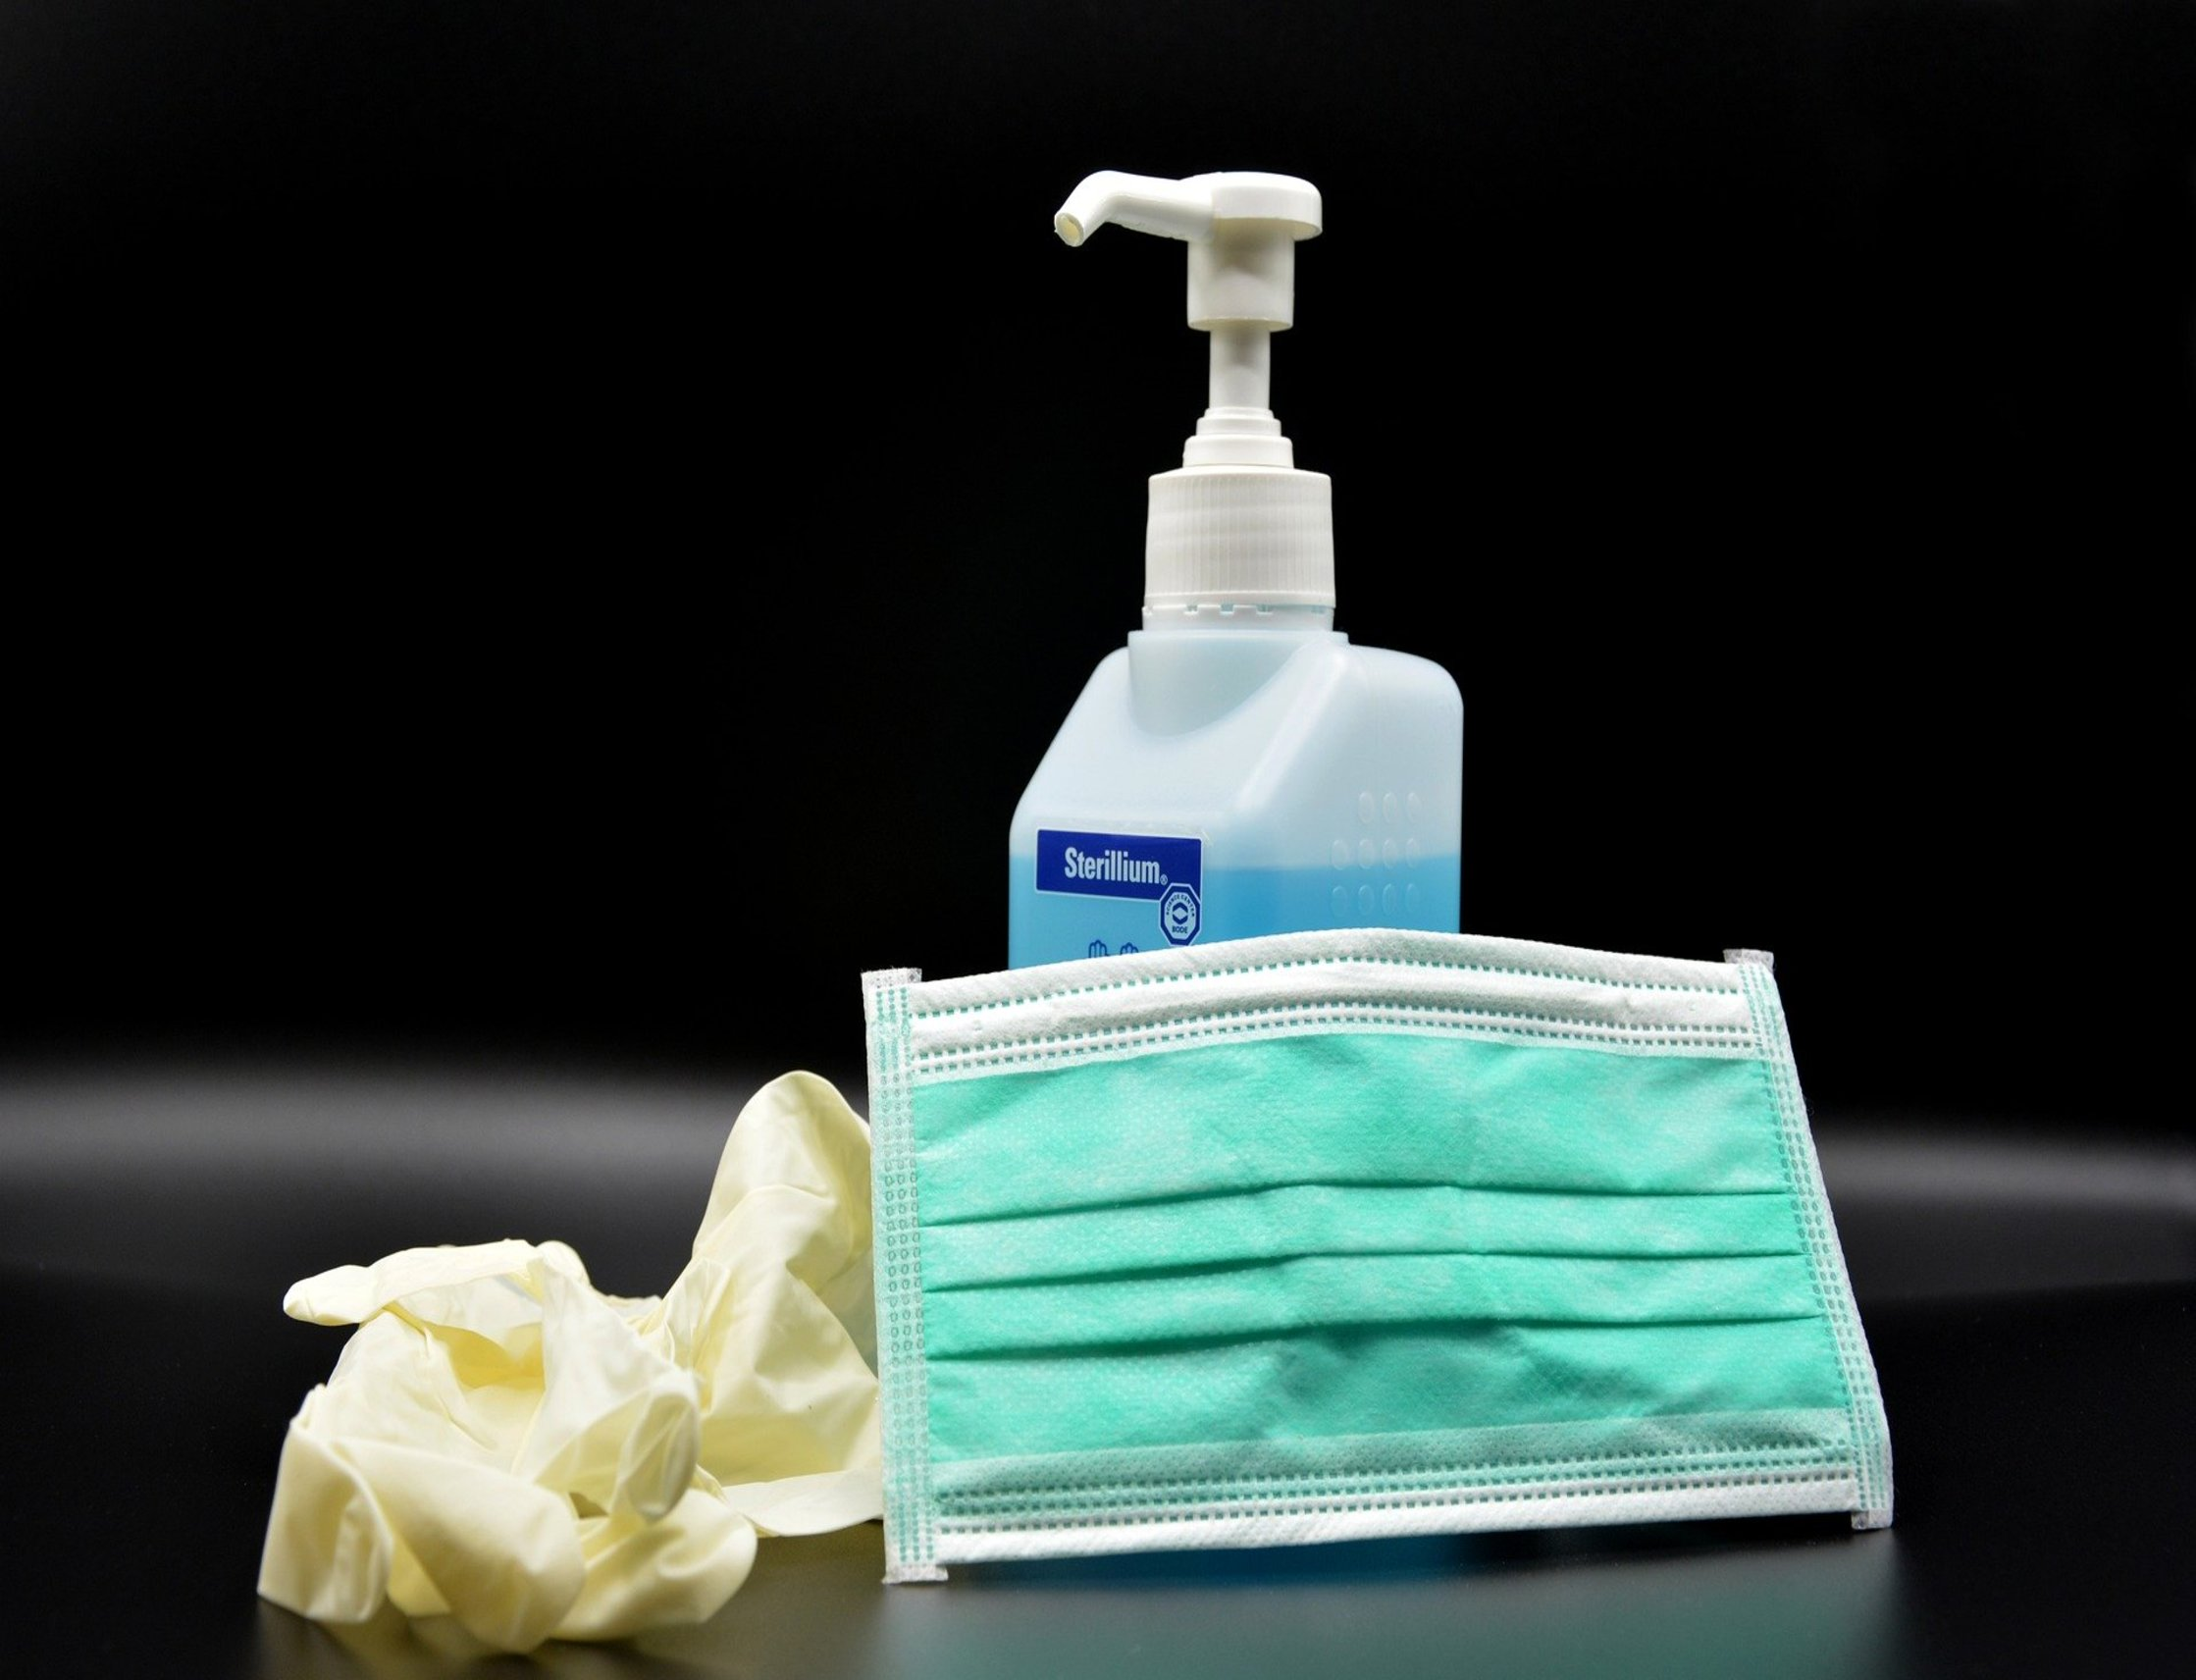 hand-disinfection-4954840_1920_2238x1712